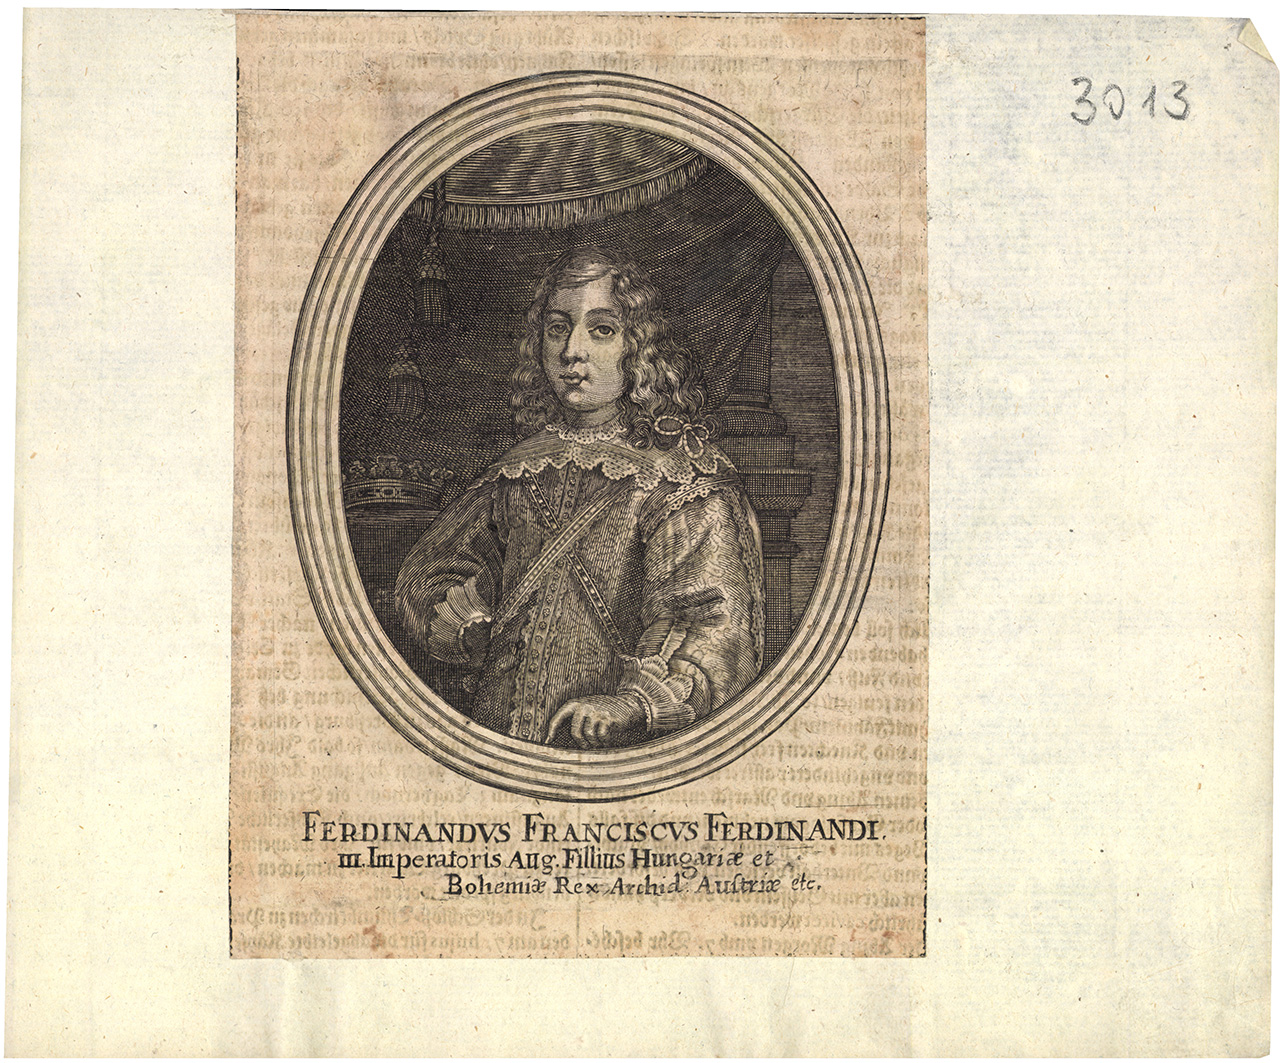 Ferdinandus Franciscus Ferdinandi III. Imperatoris Aug Fillius...